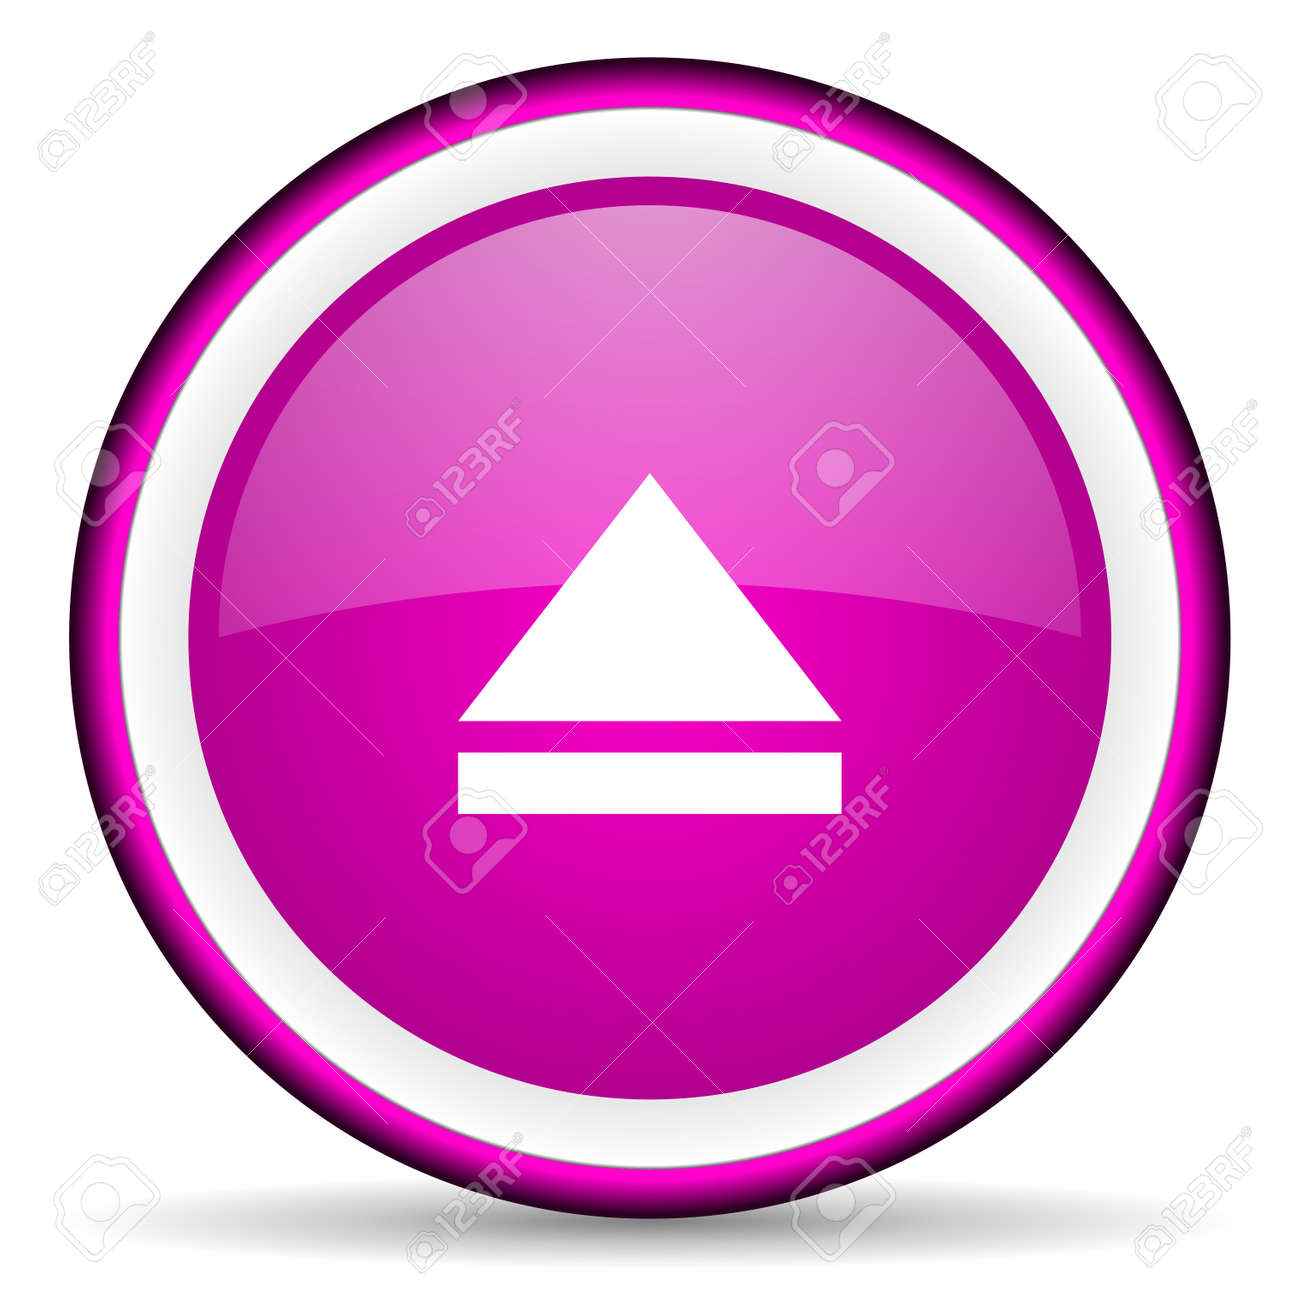 eject violet glossy icon on white background Stock Photo - 16679118